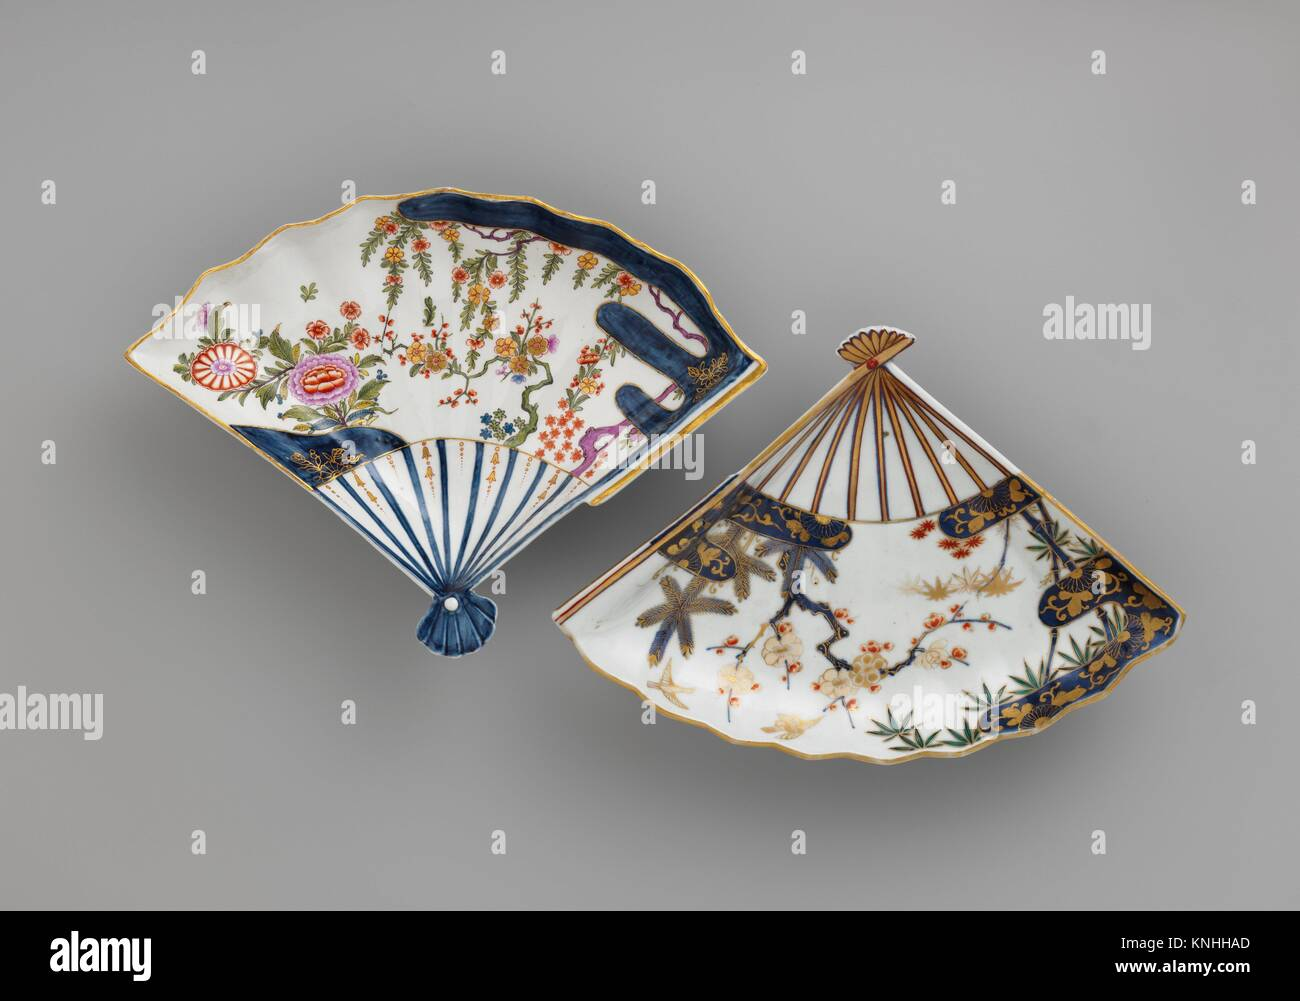 Fan-shaped dish. Factory: Vienna; Factory director: Du Paquier period (1718-1744); Date: ca. 1725-30; Culture: Austrian, - Stock Image